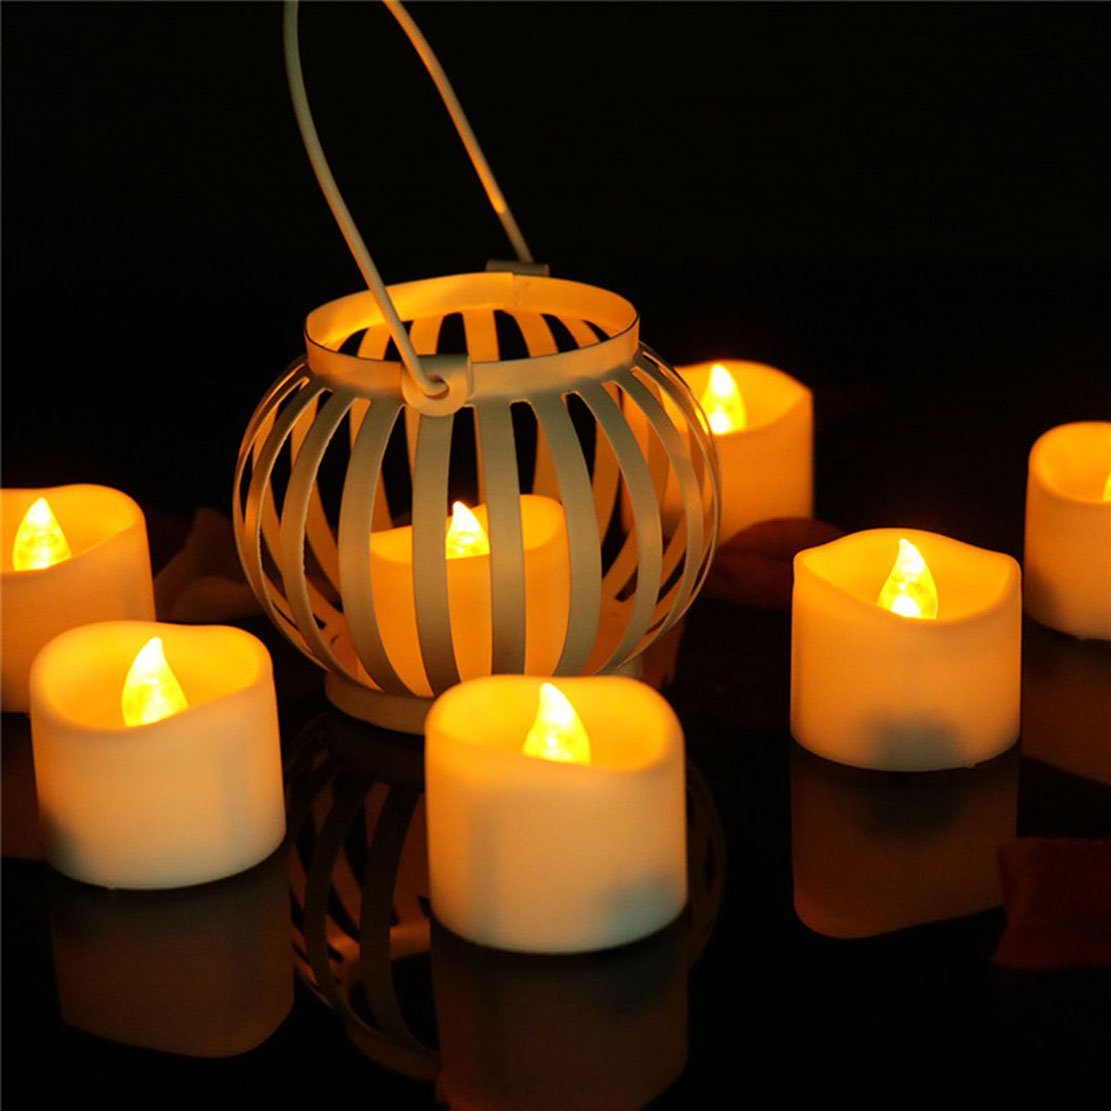 Allcute 24 Wavy Flameless Candle Tealights Battery Operated Long Burning, Amber Yellow Led Flickering Tea Lights Candles for Table Wedding Birthday Party Holiday Decorations